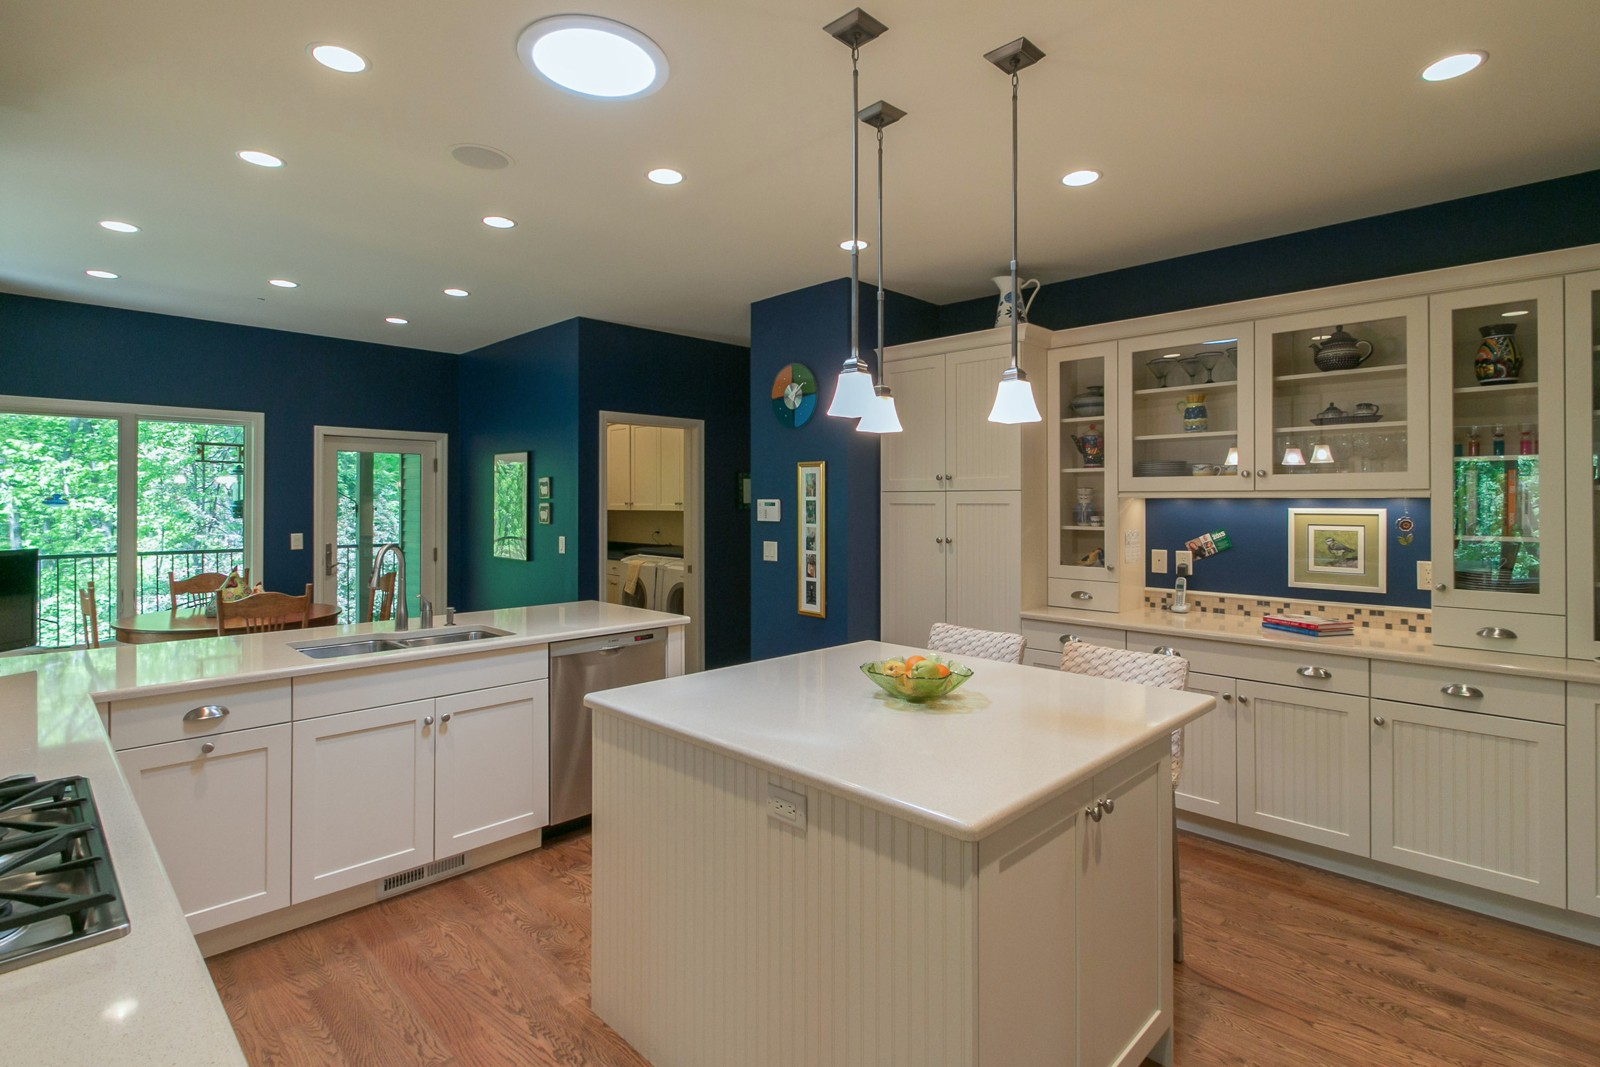 Beautiful Kitchen - Interior Design Iowa City